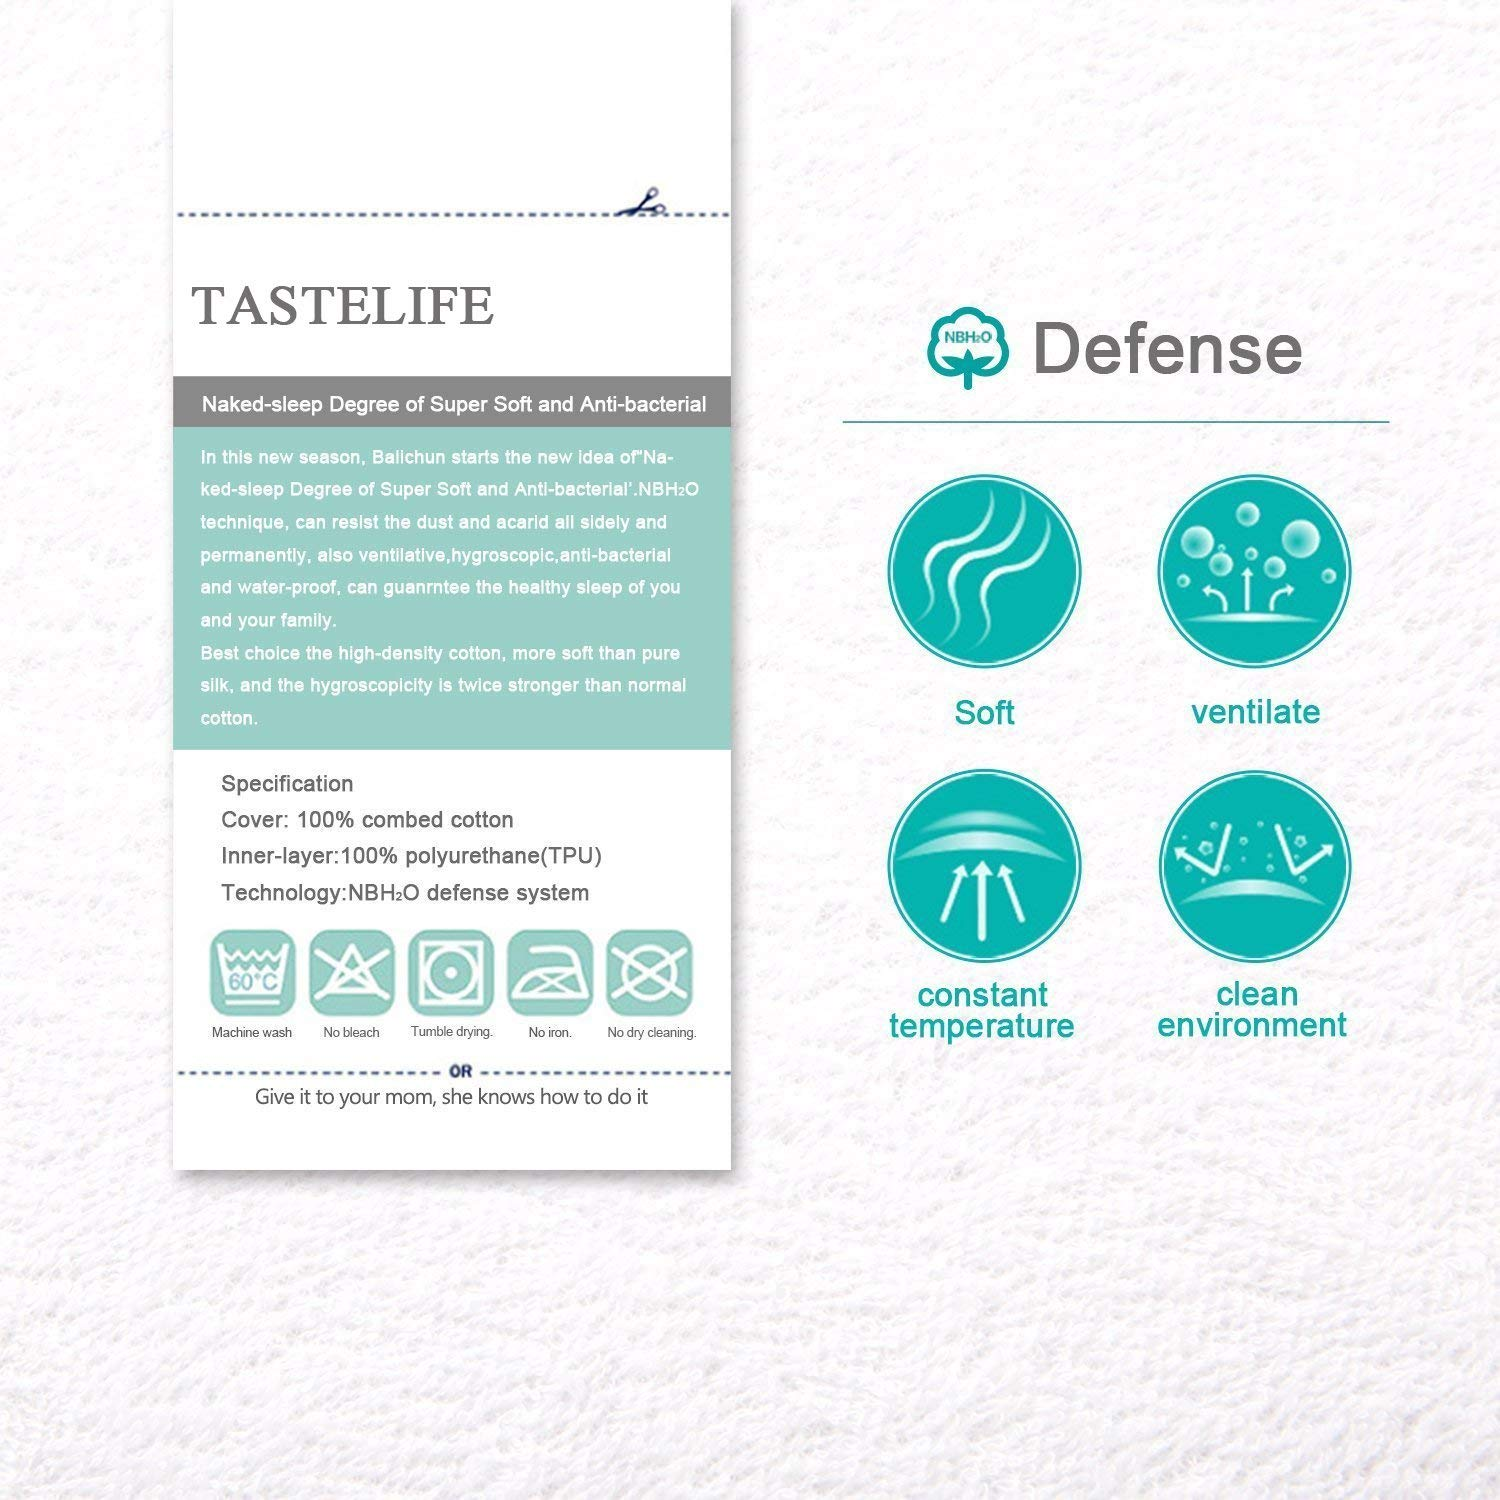 Features of Tastelife Waterproof Mattress Protector